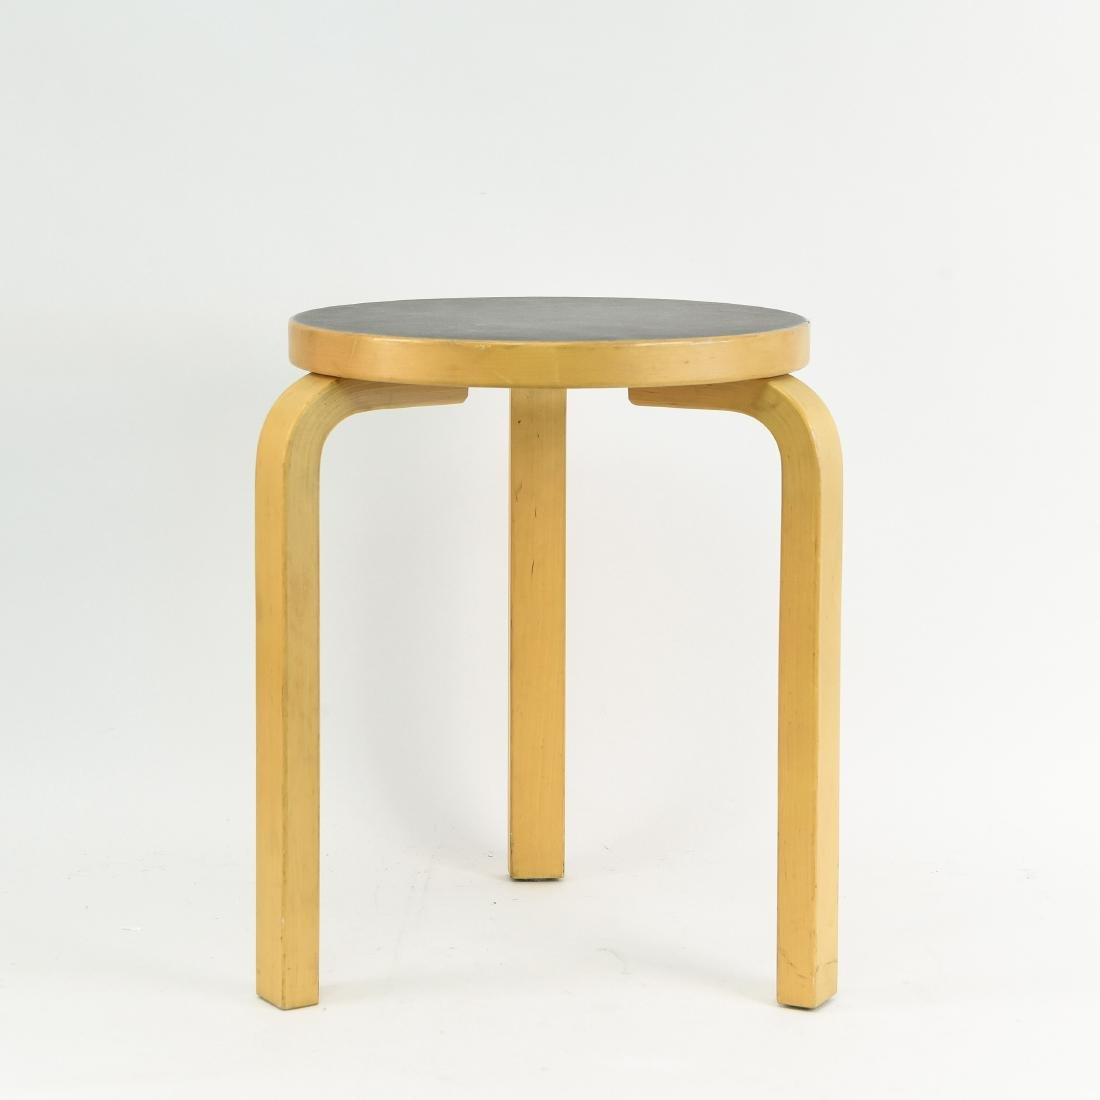 ALVAR AALTO FOR ICF TABLE